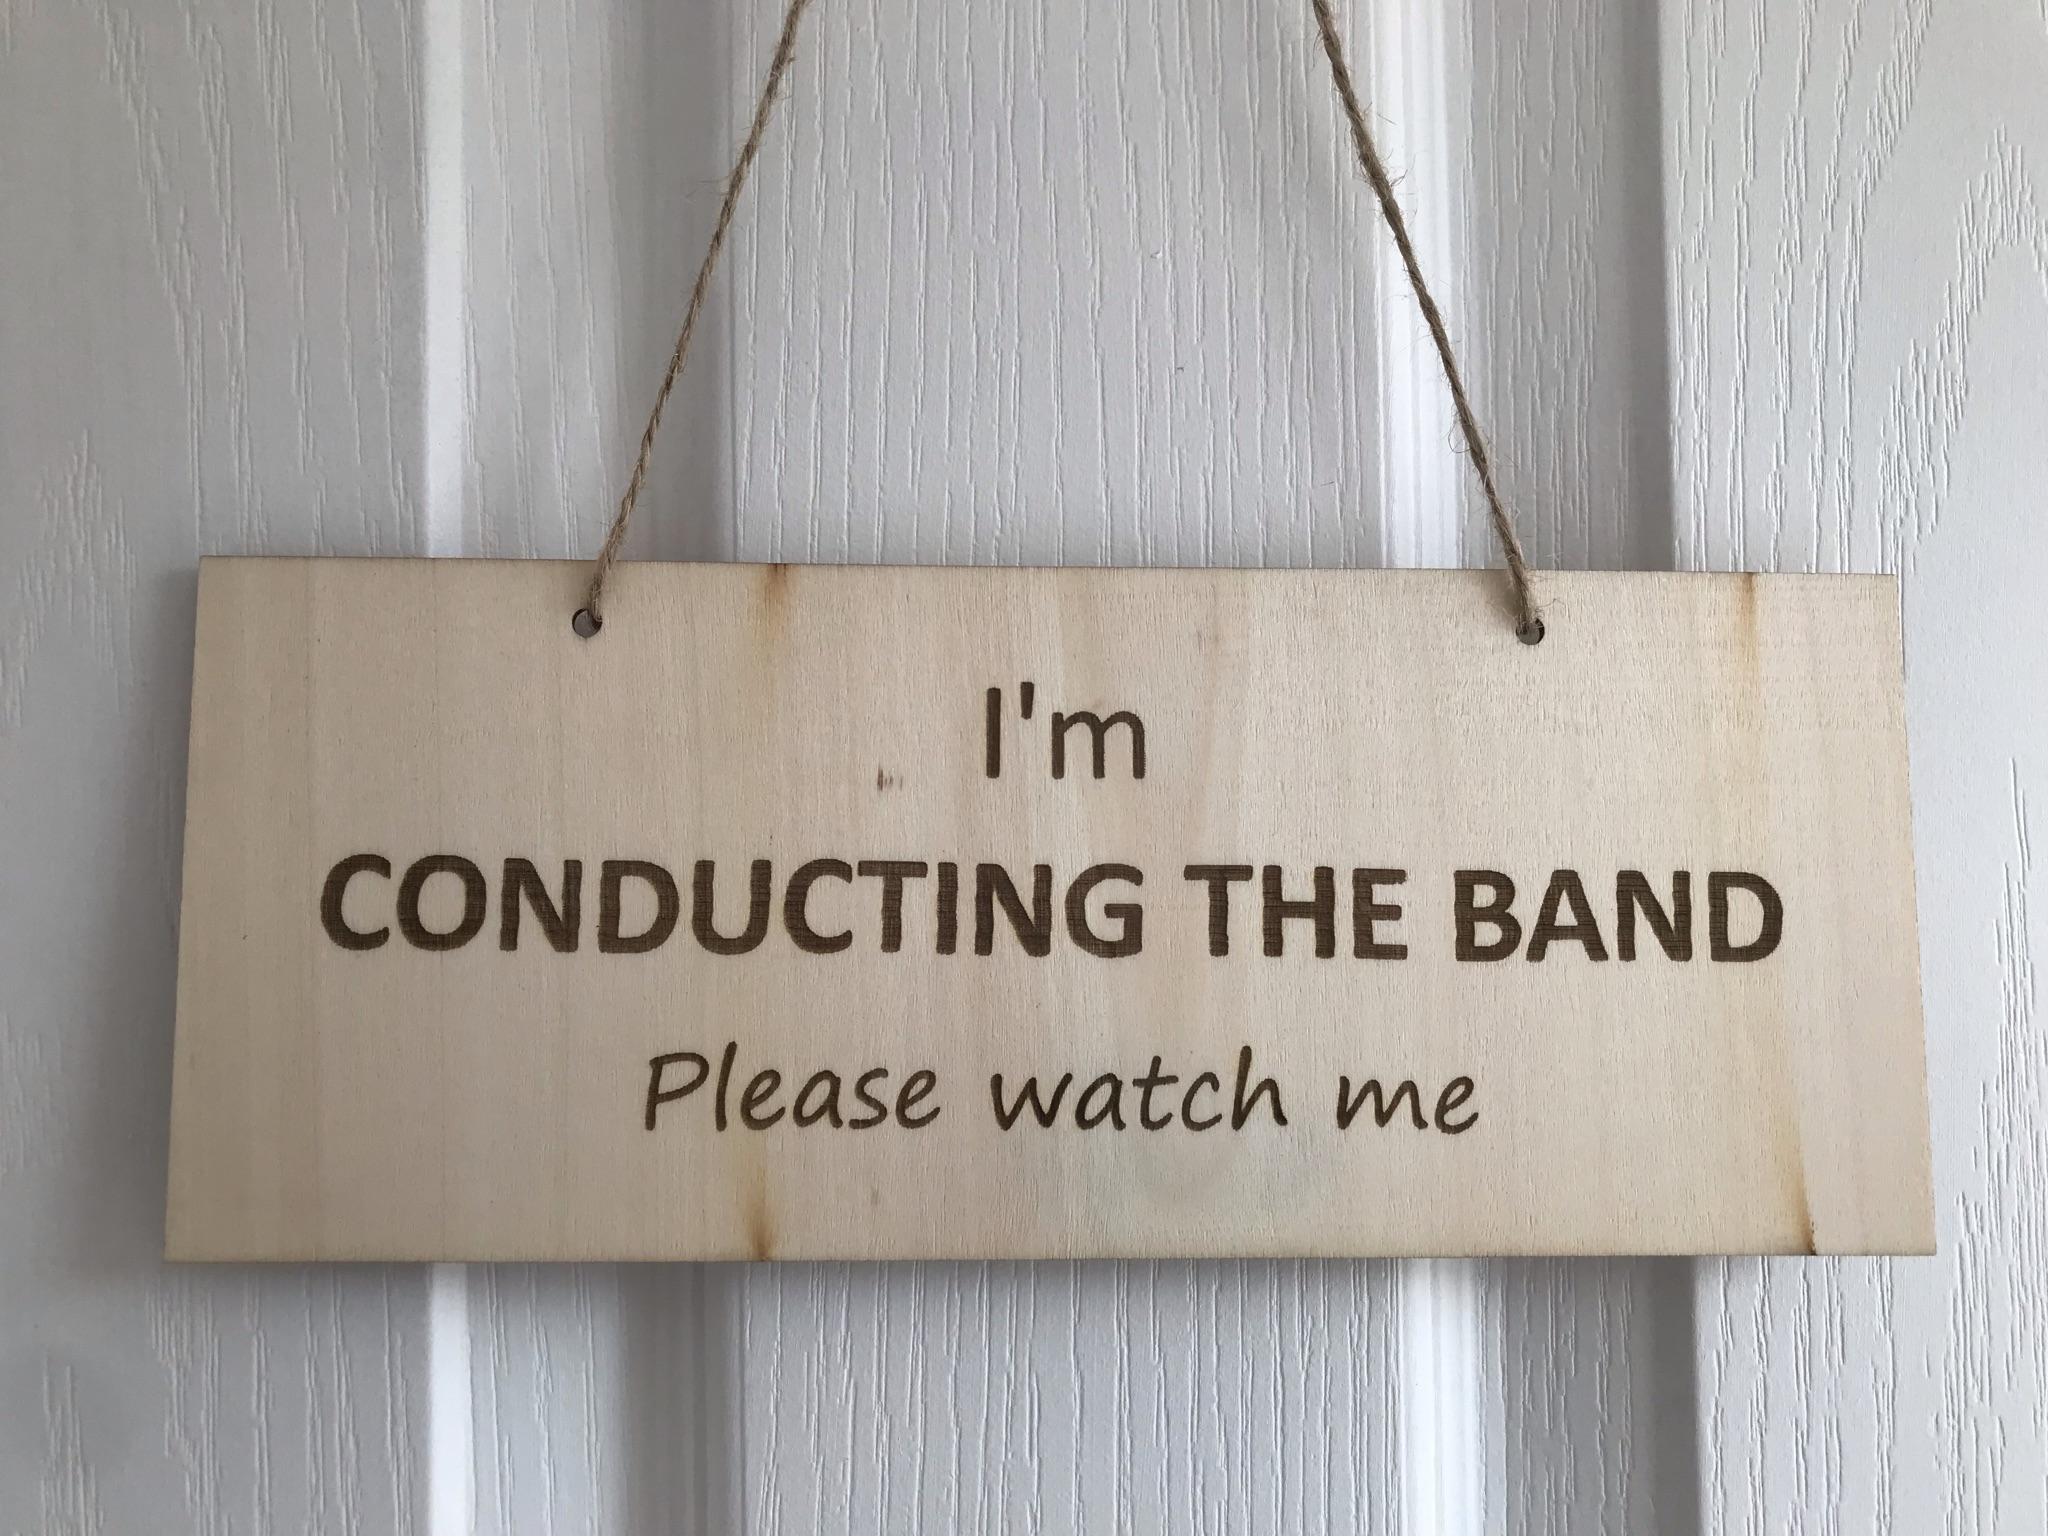 Rather be conducting back